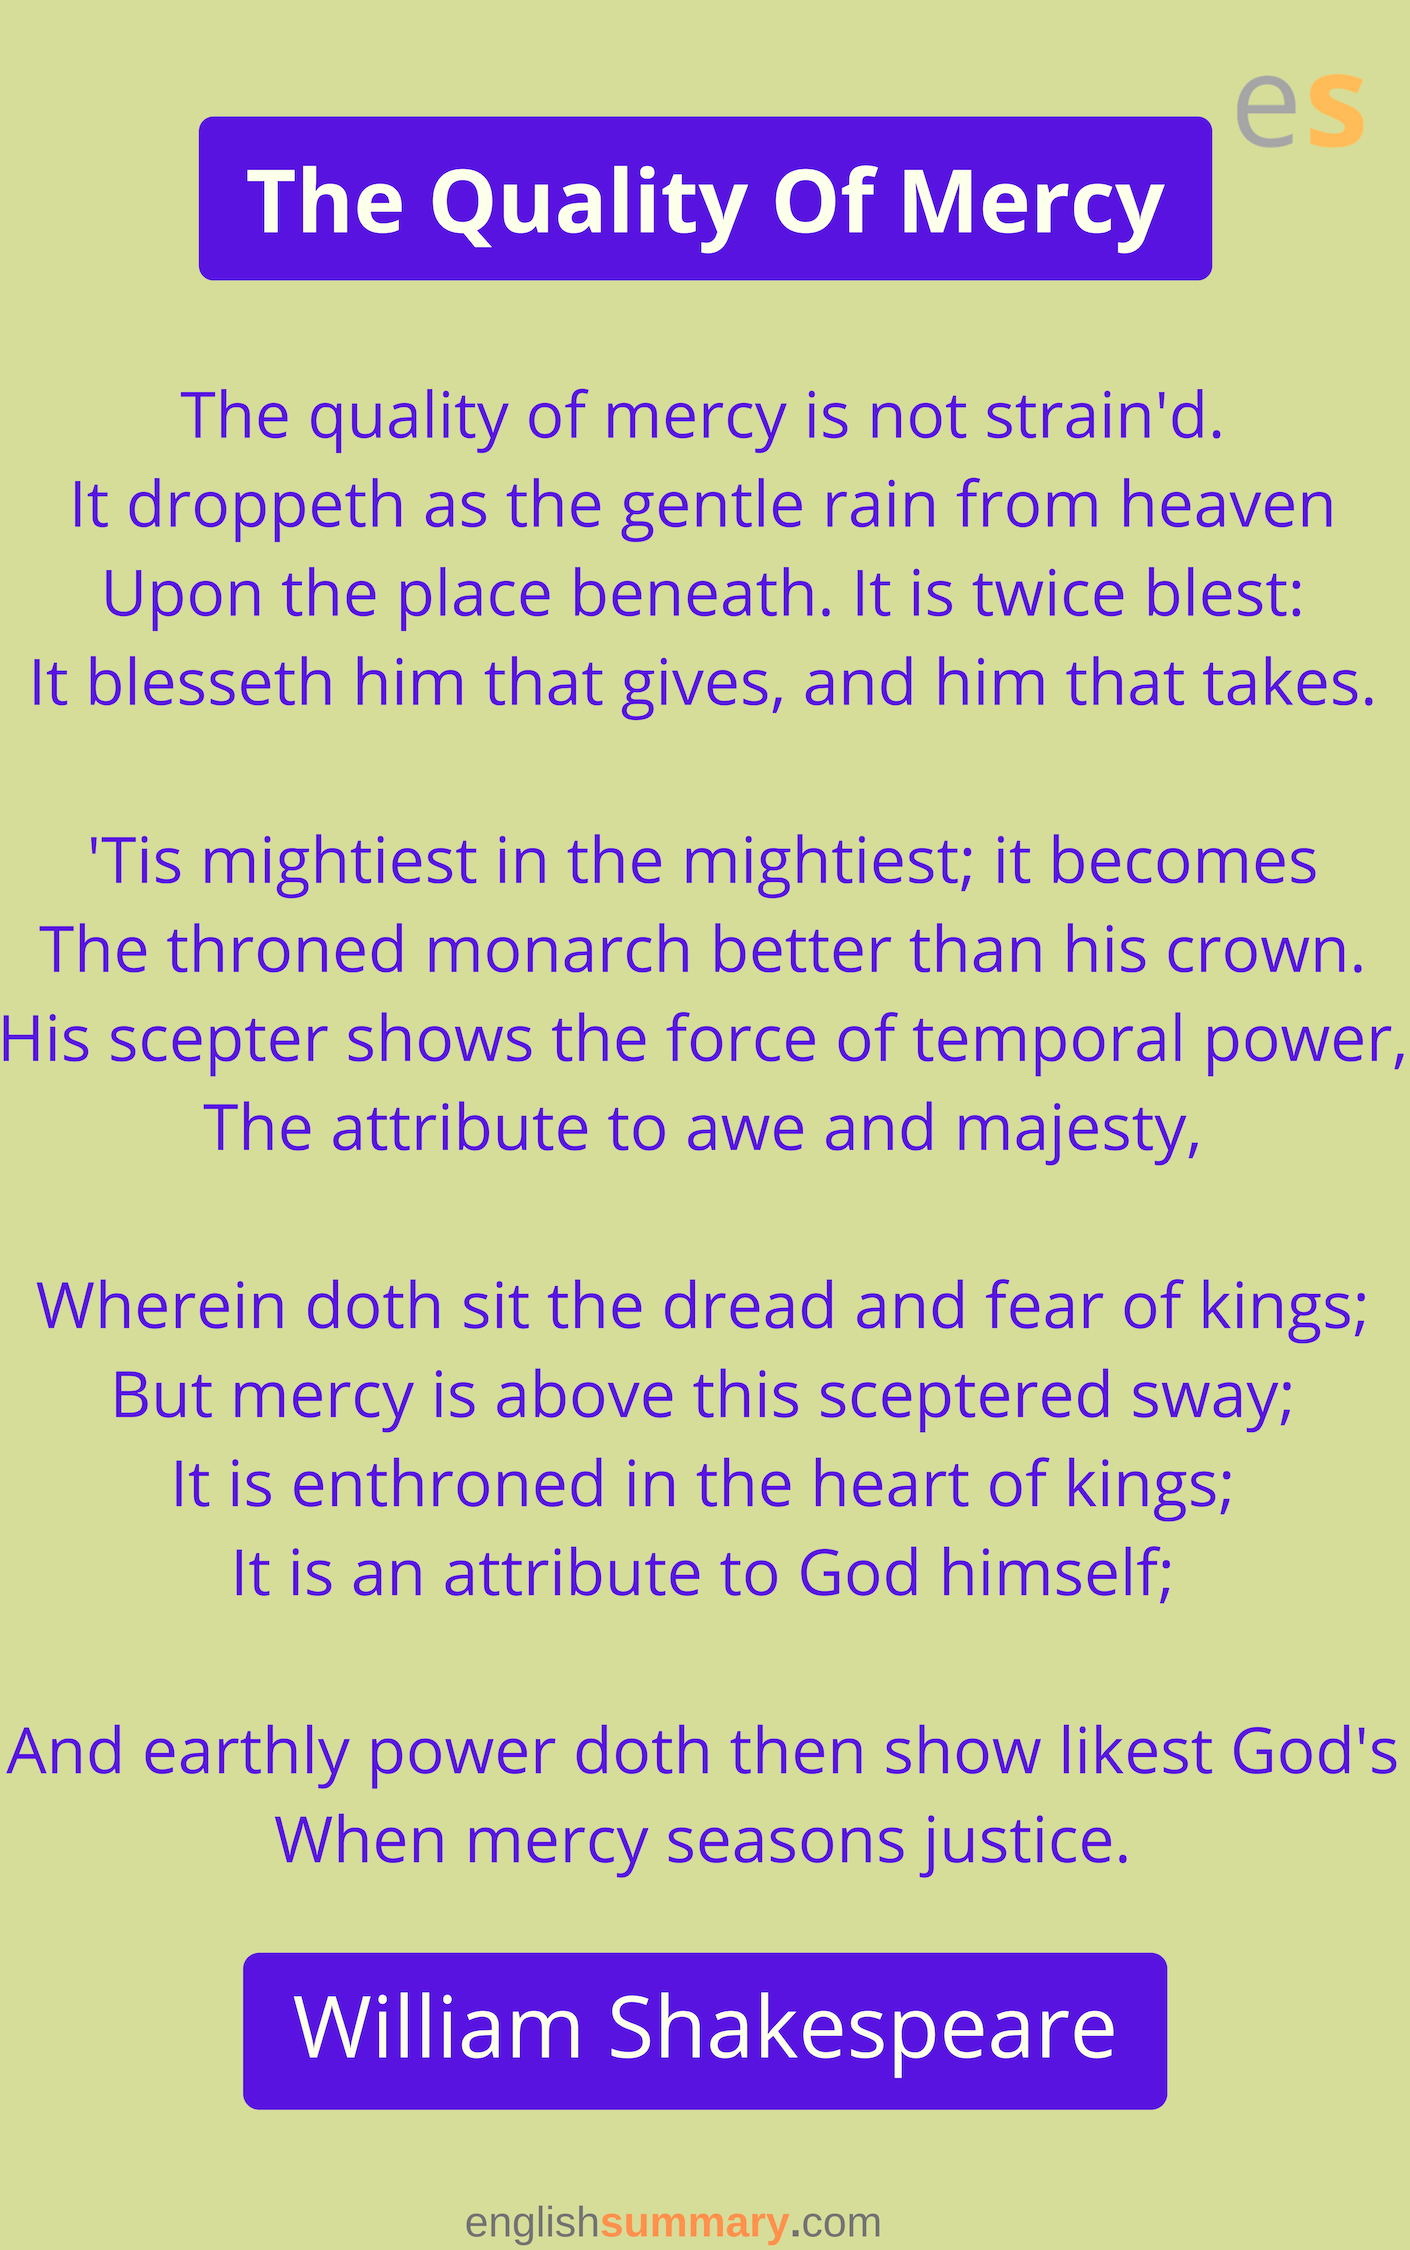 The Quality Of Mercy Poem By William Shakespeare How To Memorize Thing Poems A Beauty John Keat Theme